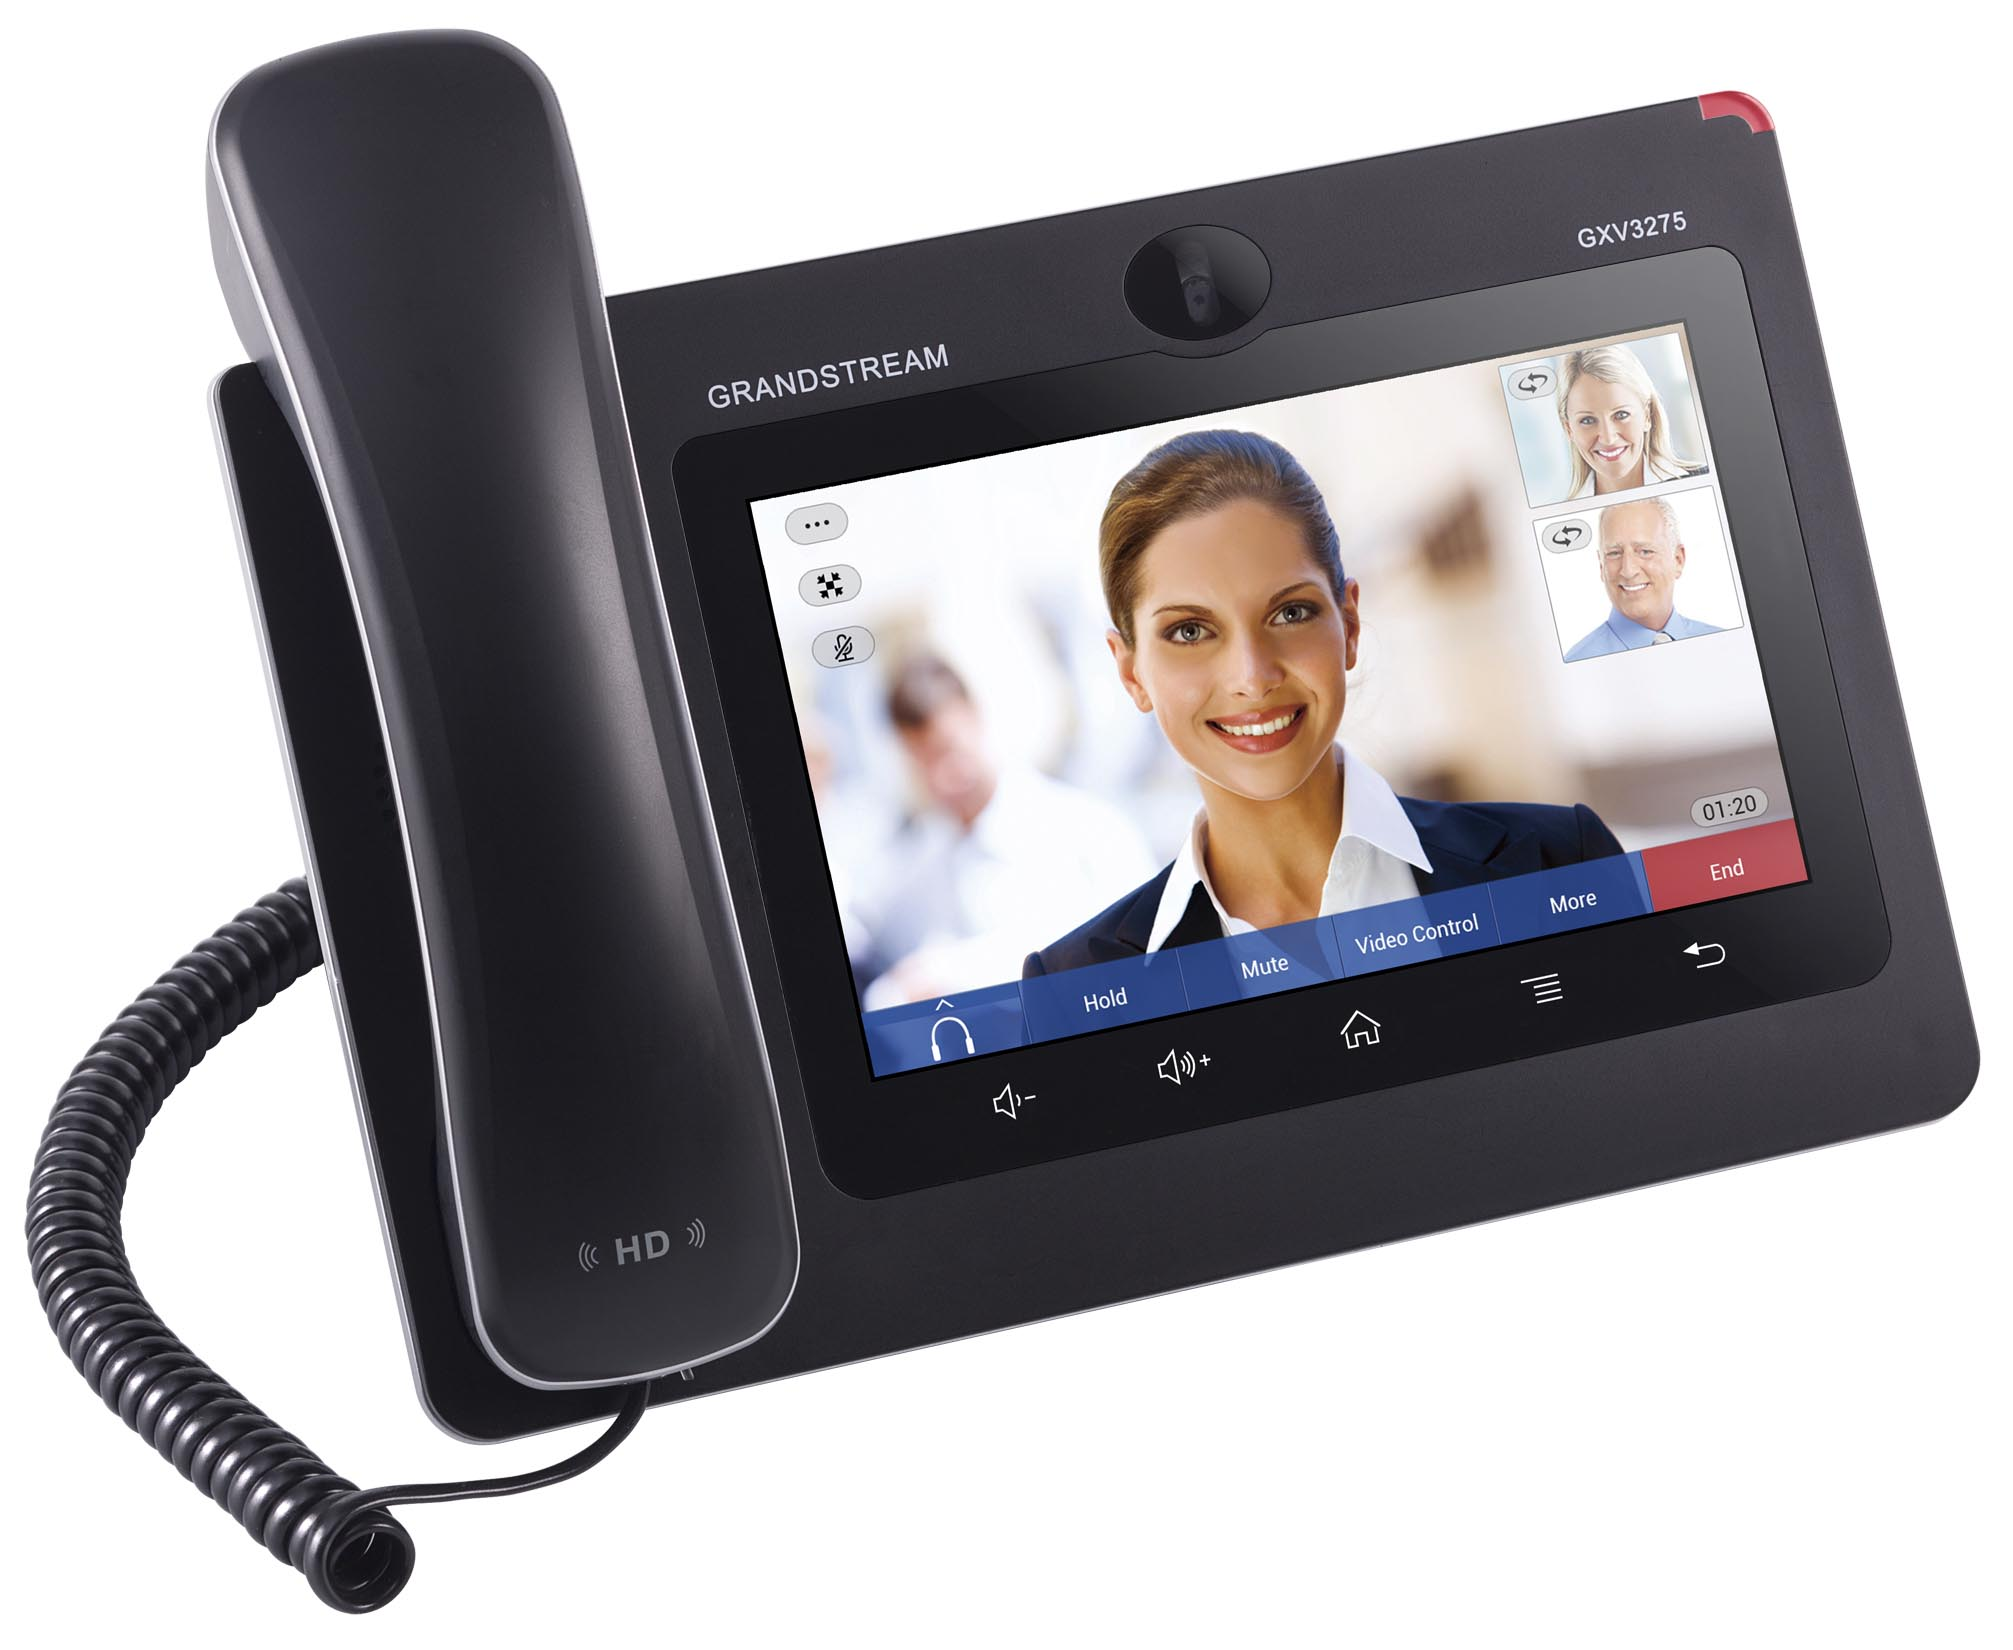 Grandstream GXV3275 Video Android IP Telefon